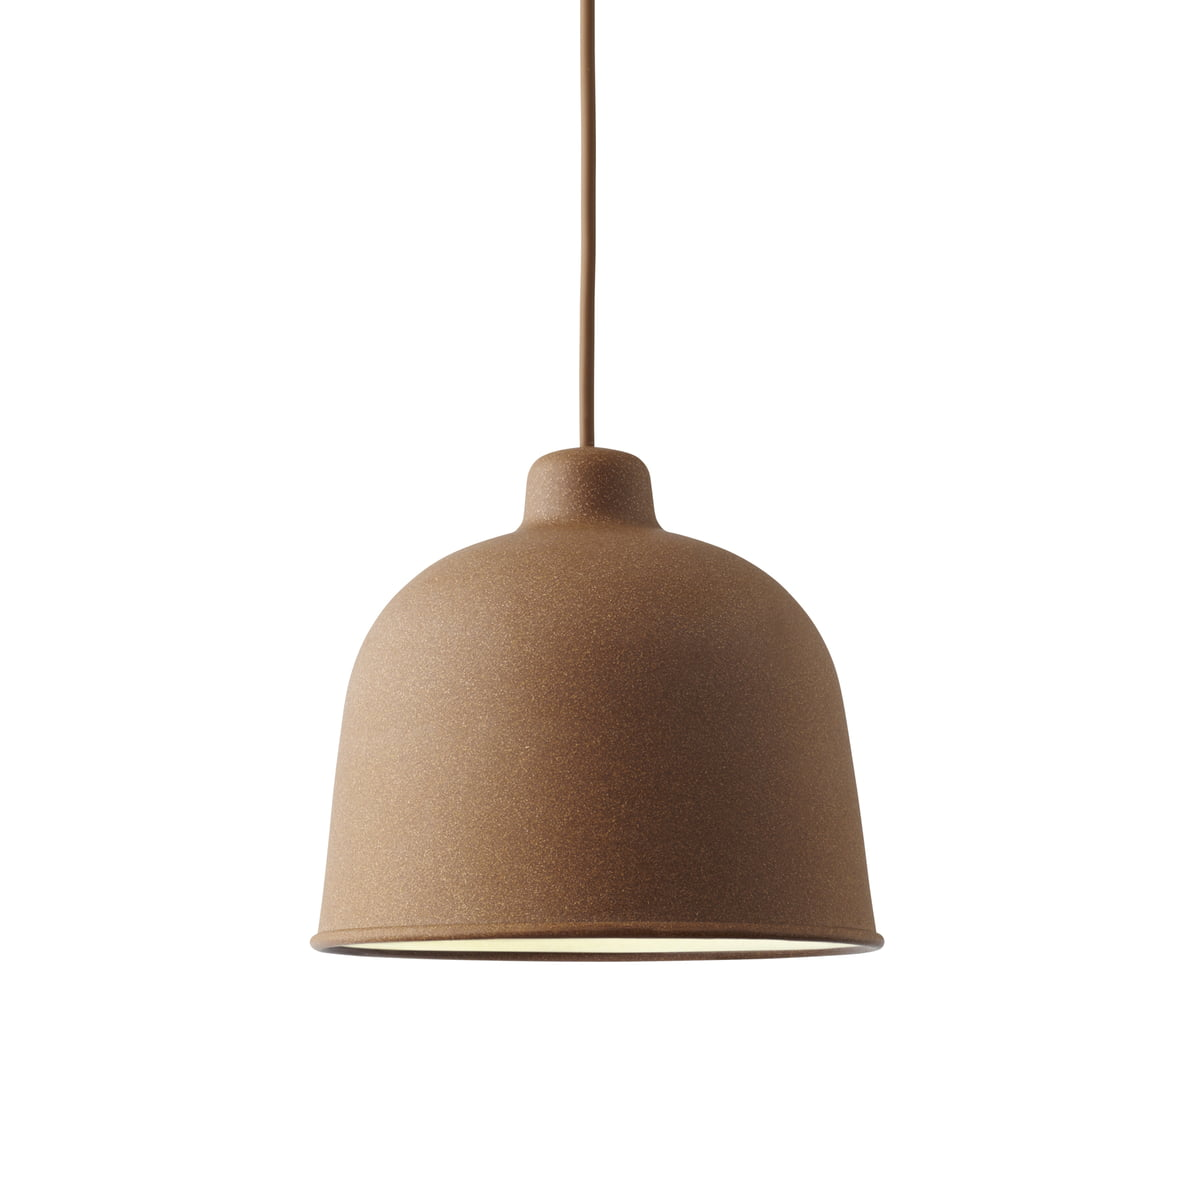 Suspension lumineuse grain de muuto for Suspension lumineuse